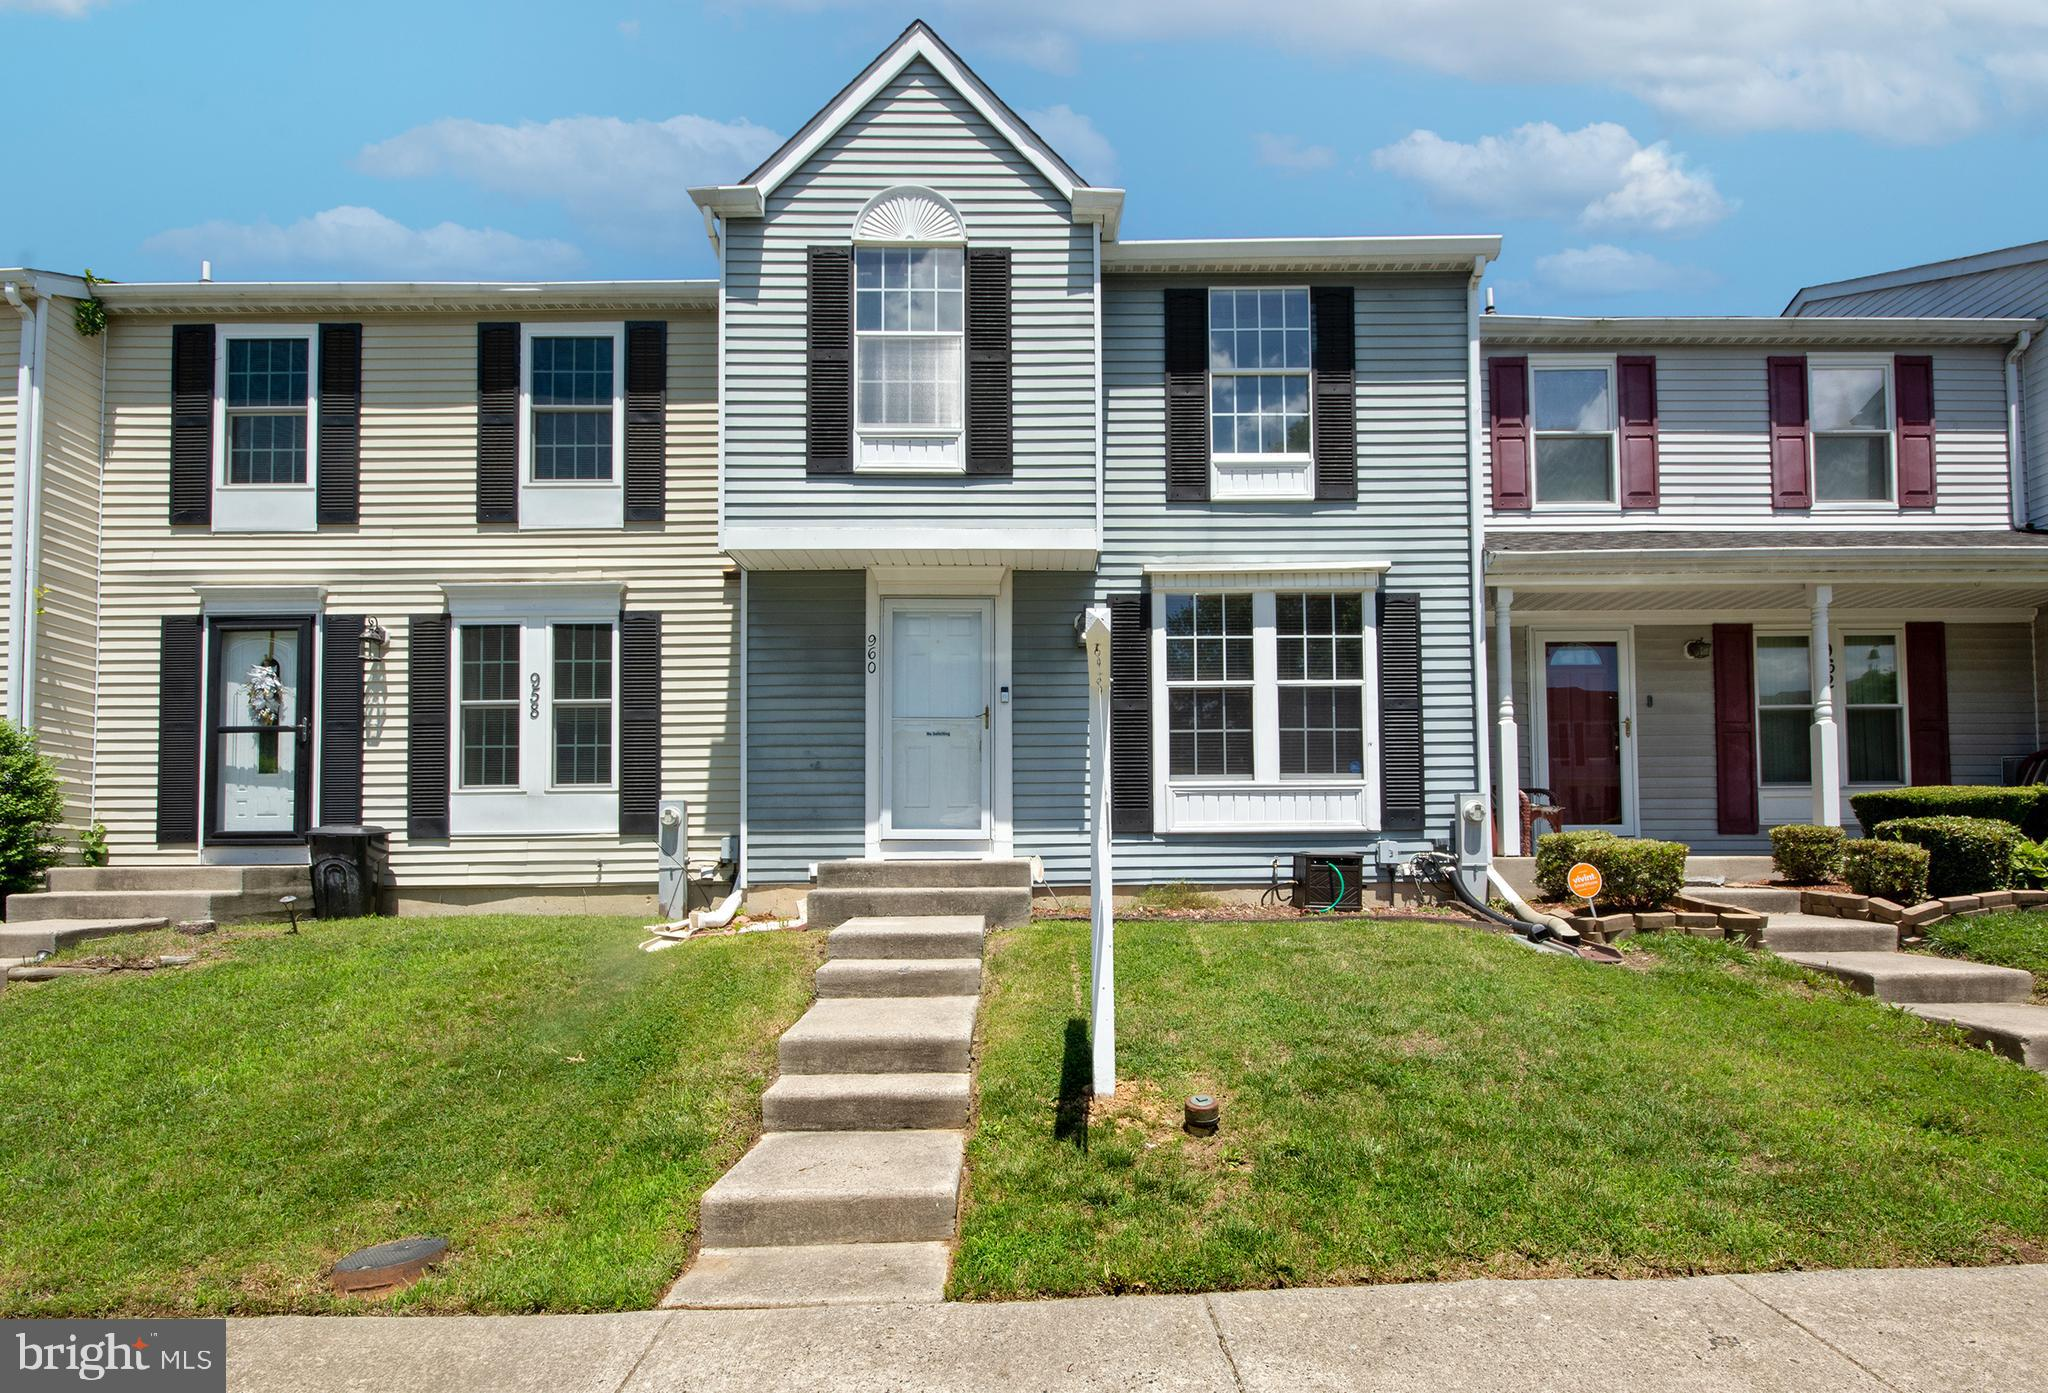 THIS 2 BEDROOM 2 BATH HOME IS LOCATED IN THE WOODBRIDGE COMMUNITY IN EDGEWWOD. THE HOME FEATURES NEW